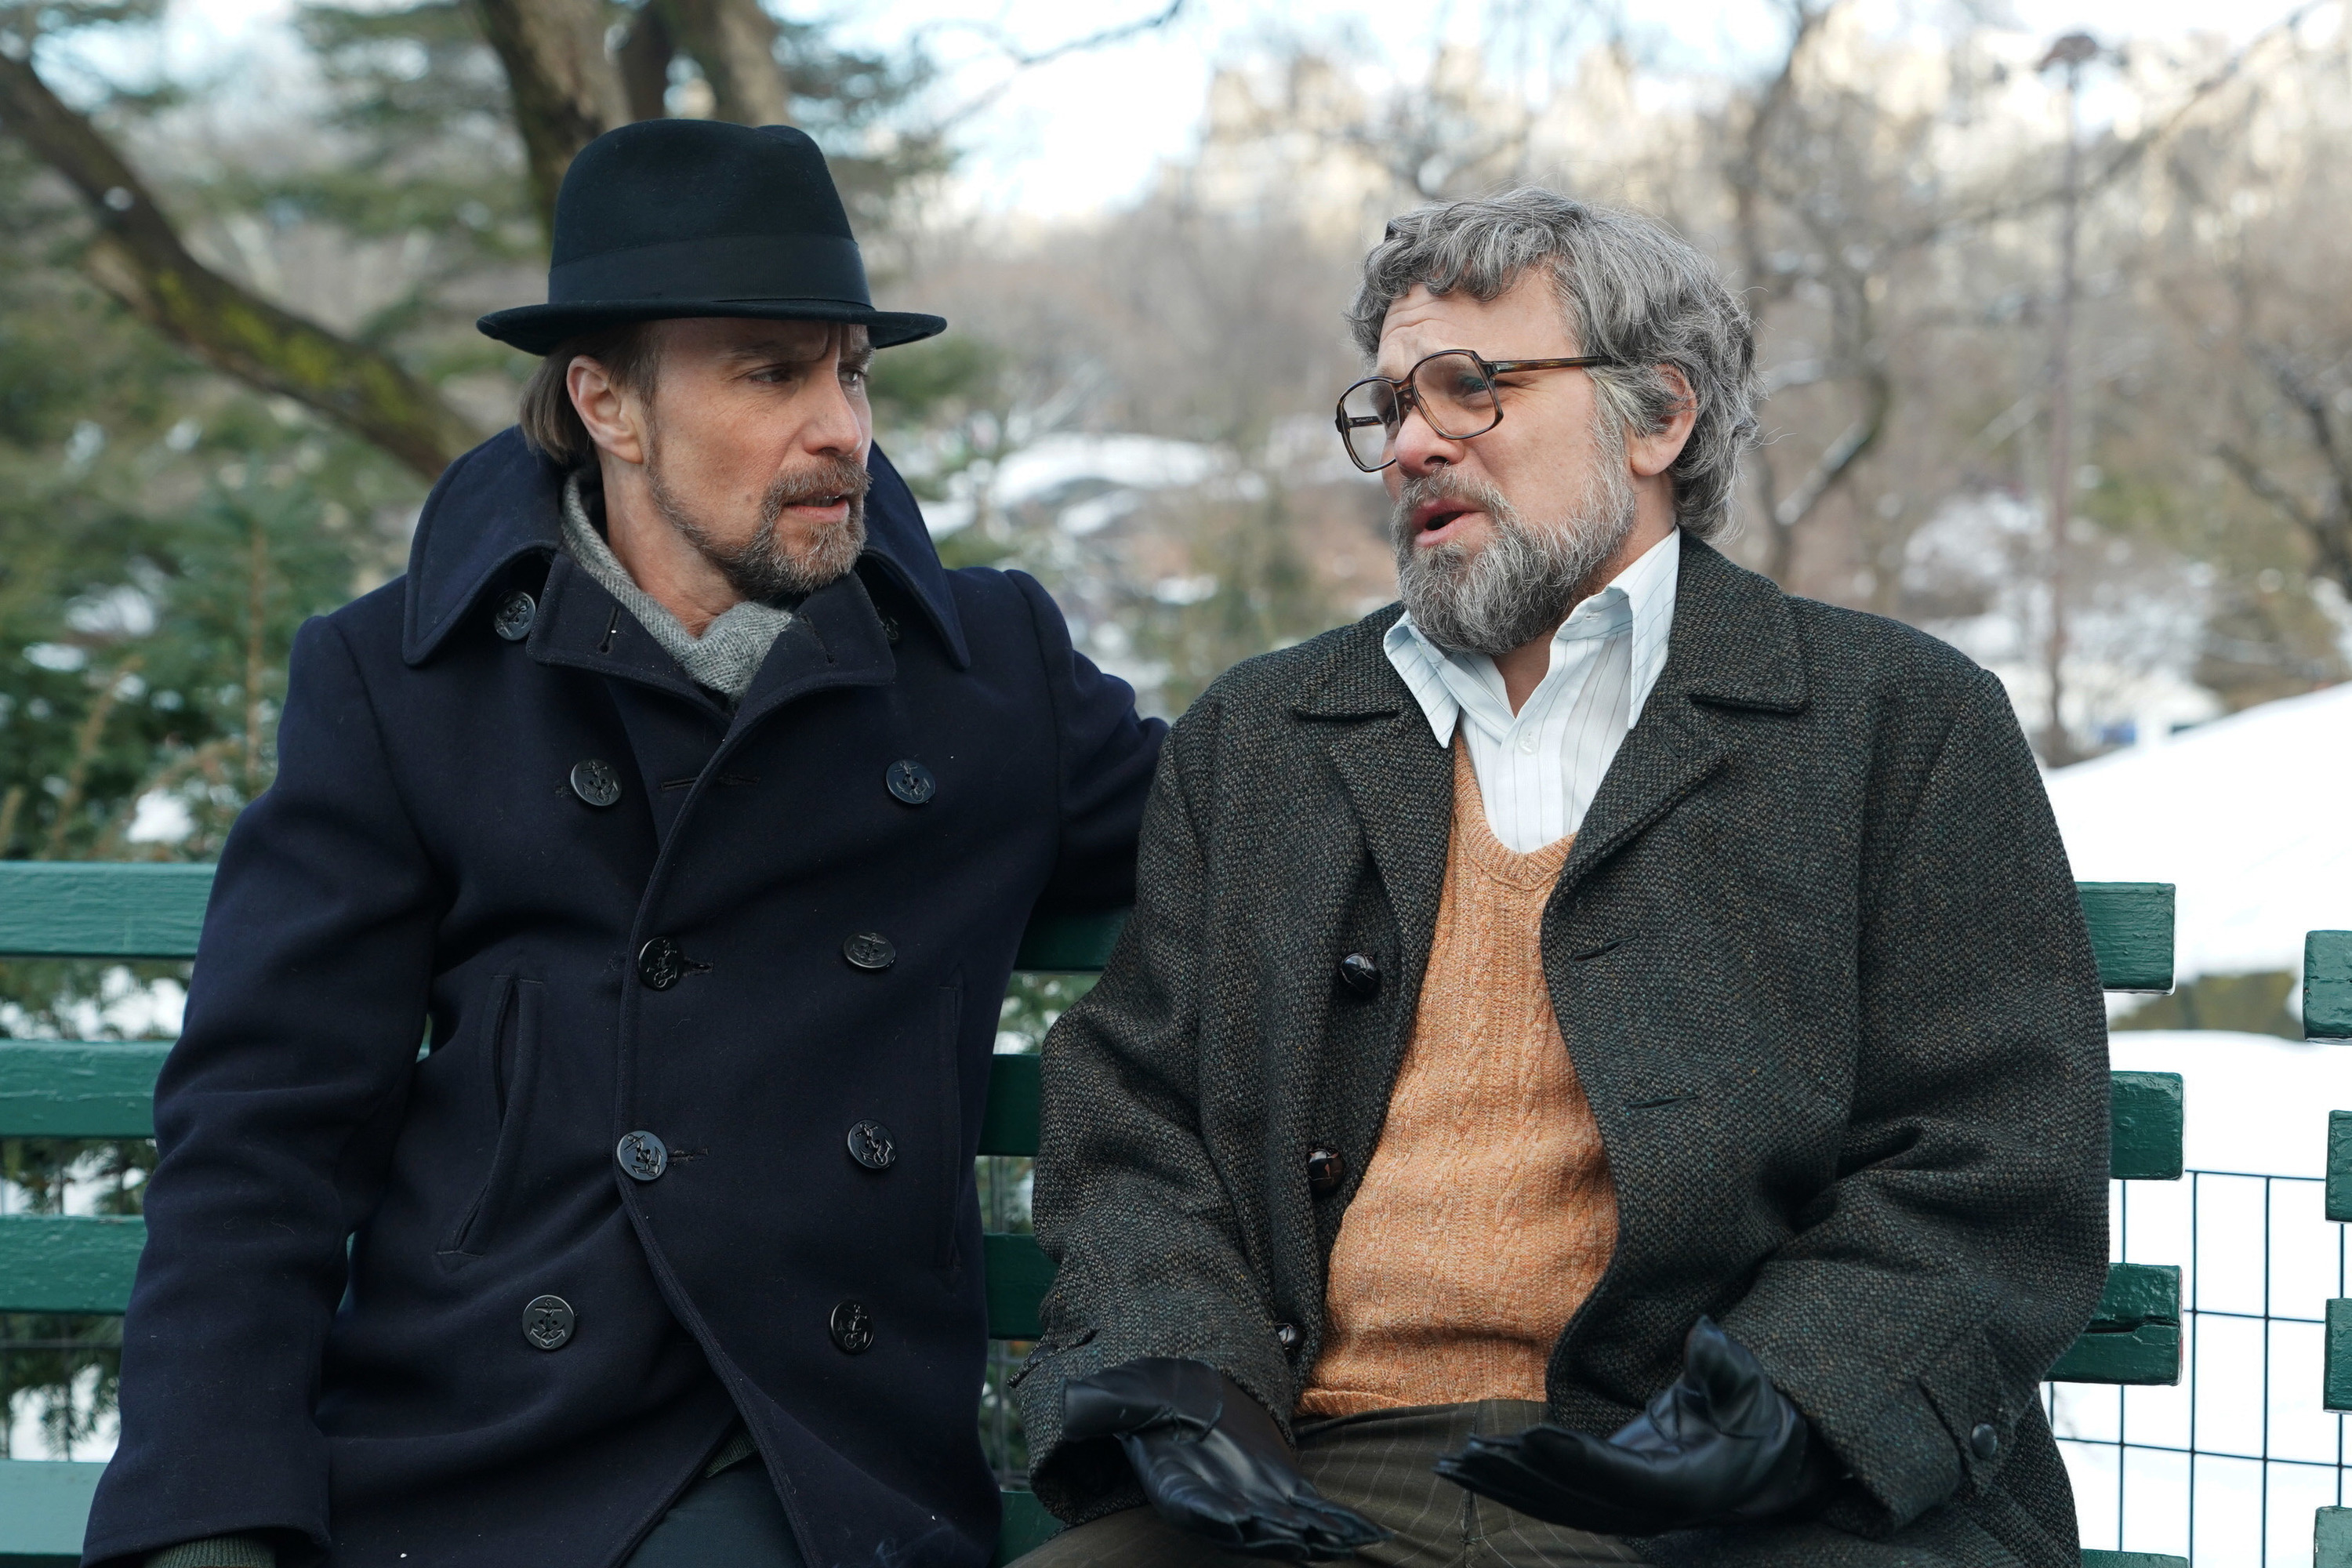 """FOSSE VERDON """"Nowadays"""" Episode 8 (Airs Tuesday, May 28, 10:00 pm/ep) -- Pictured: (l-r) Sam Rockwell as Bob Fosse, Norbert Leo Butz as Paddy Chayefsky. CR: Nicole Rivelli/FX"""